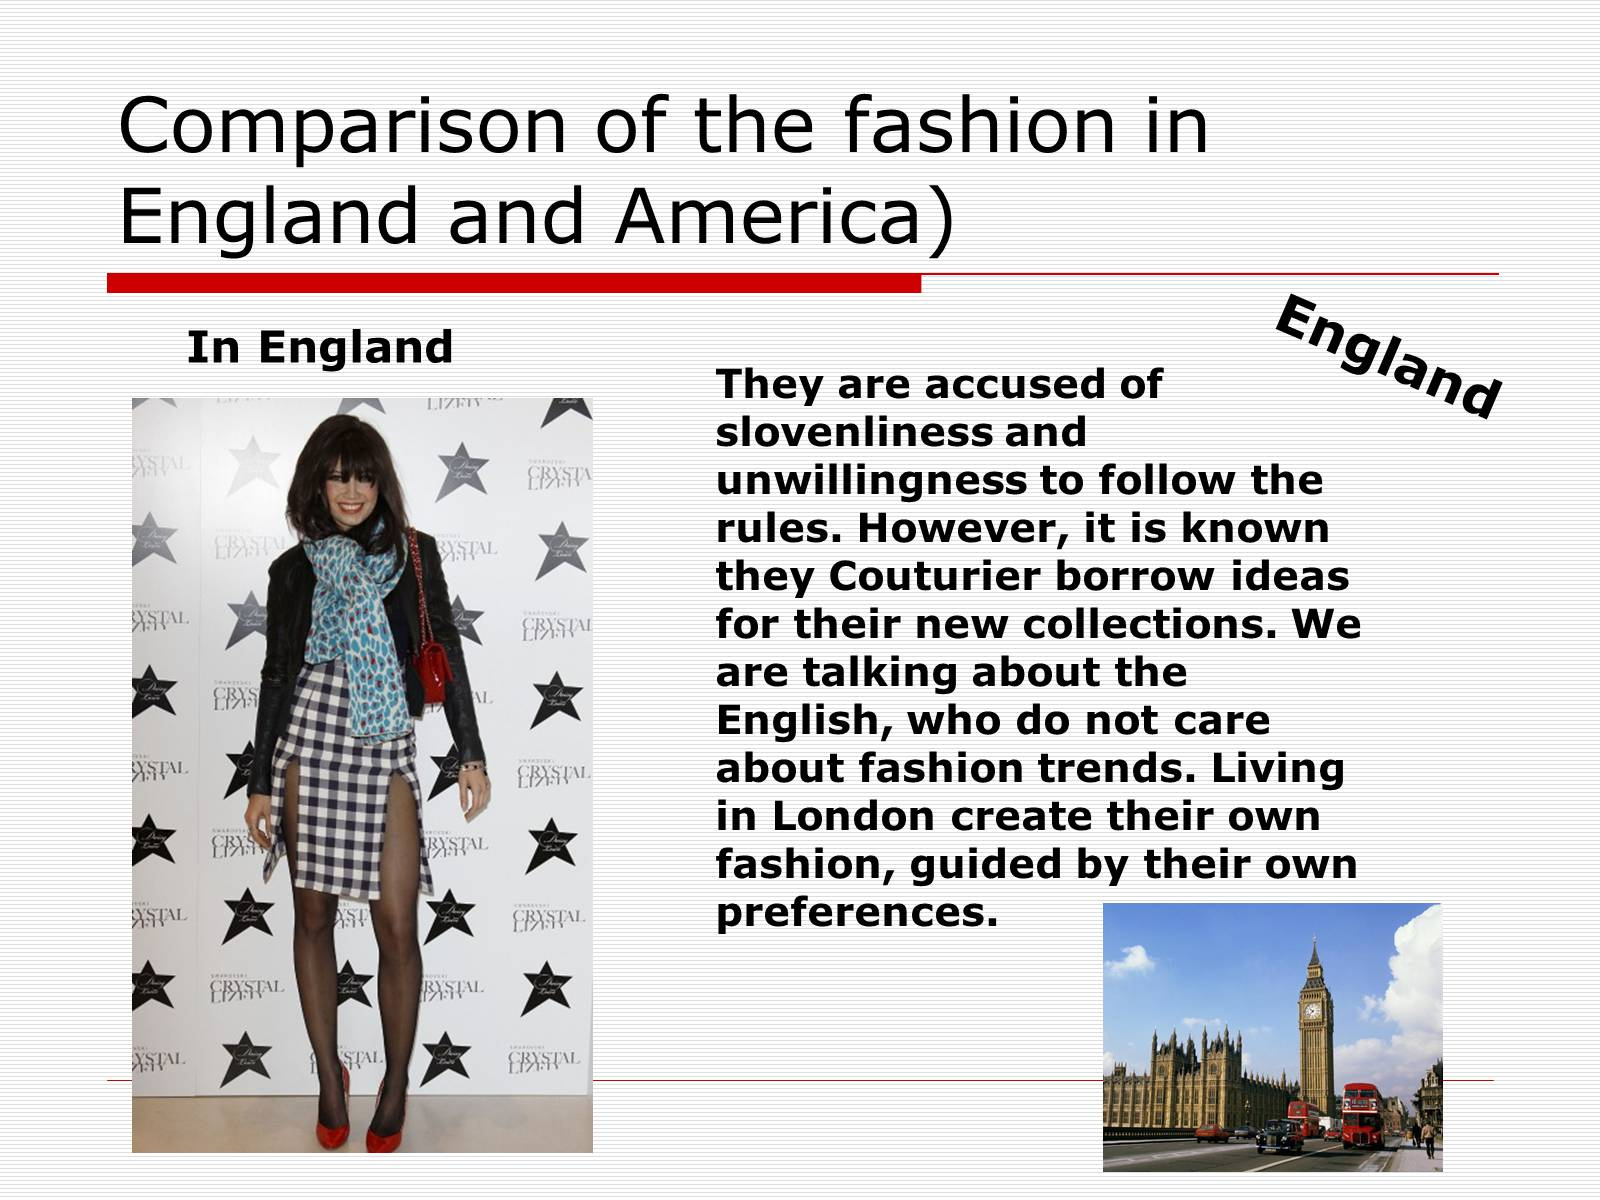 Презентація на тему «Comparison of the fashion in England and America» - Слайд #13